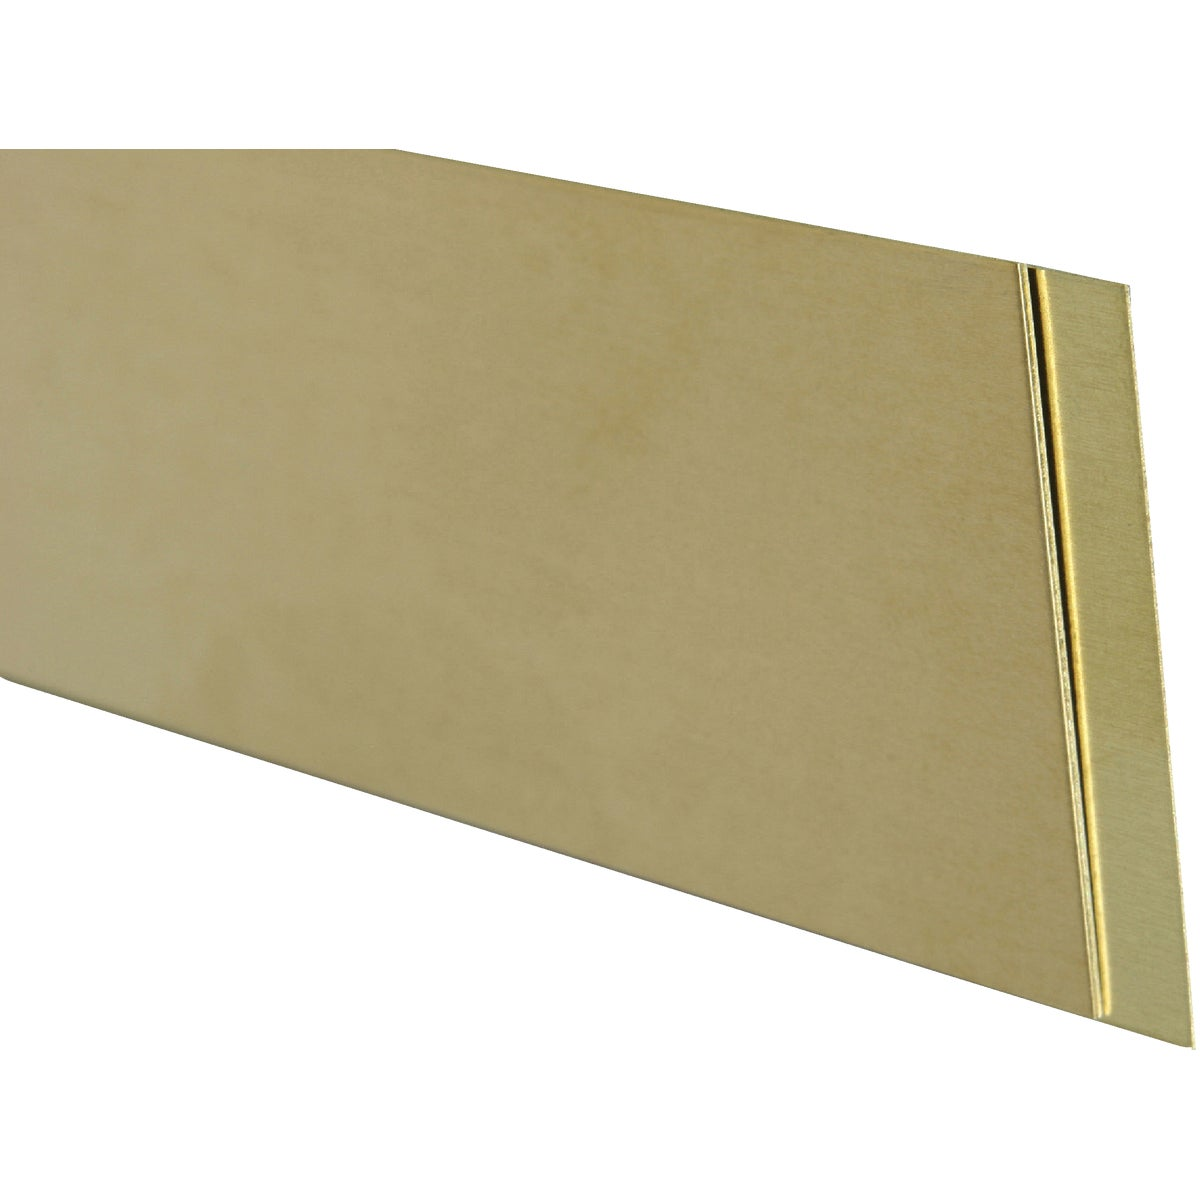 .093X3/4X12 BRASS STRIP - 227 by K&s Precision Metals